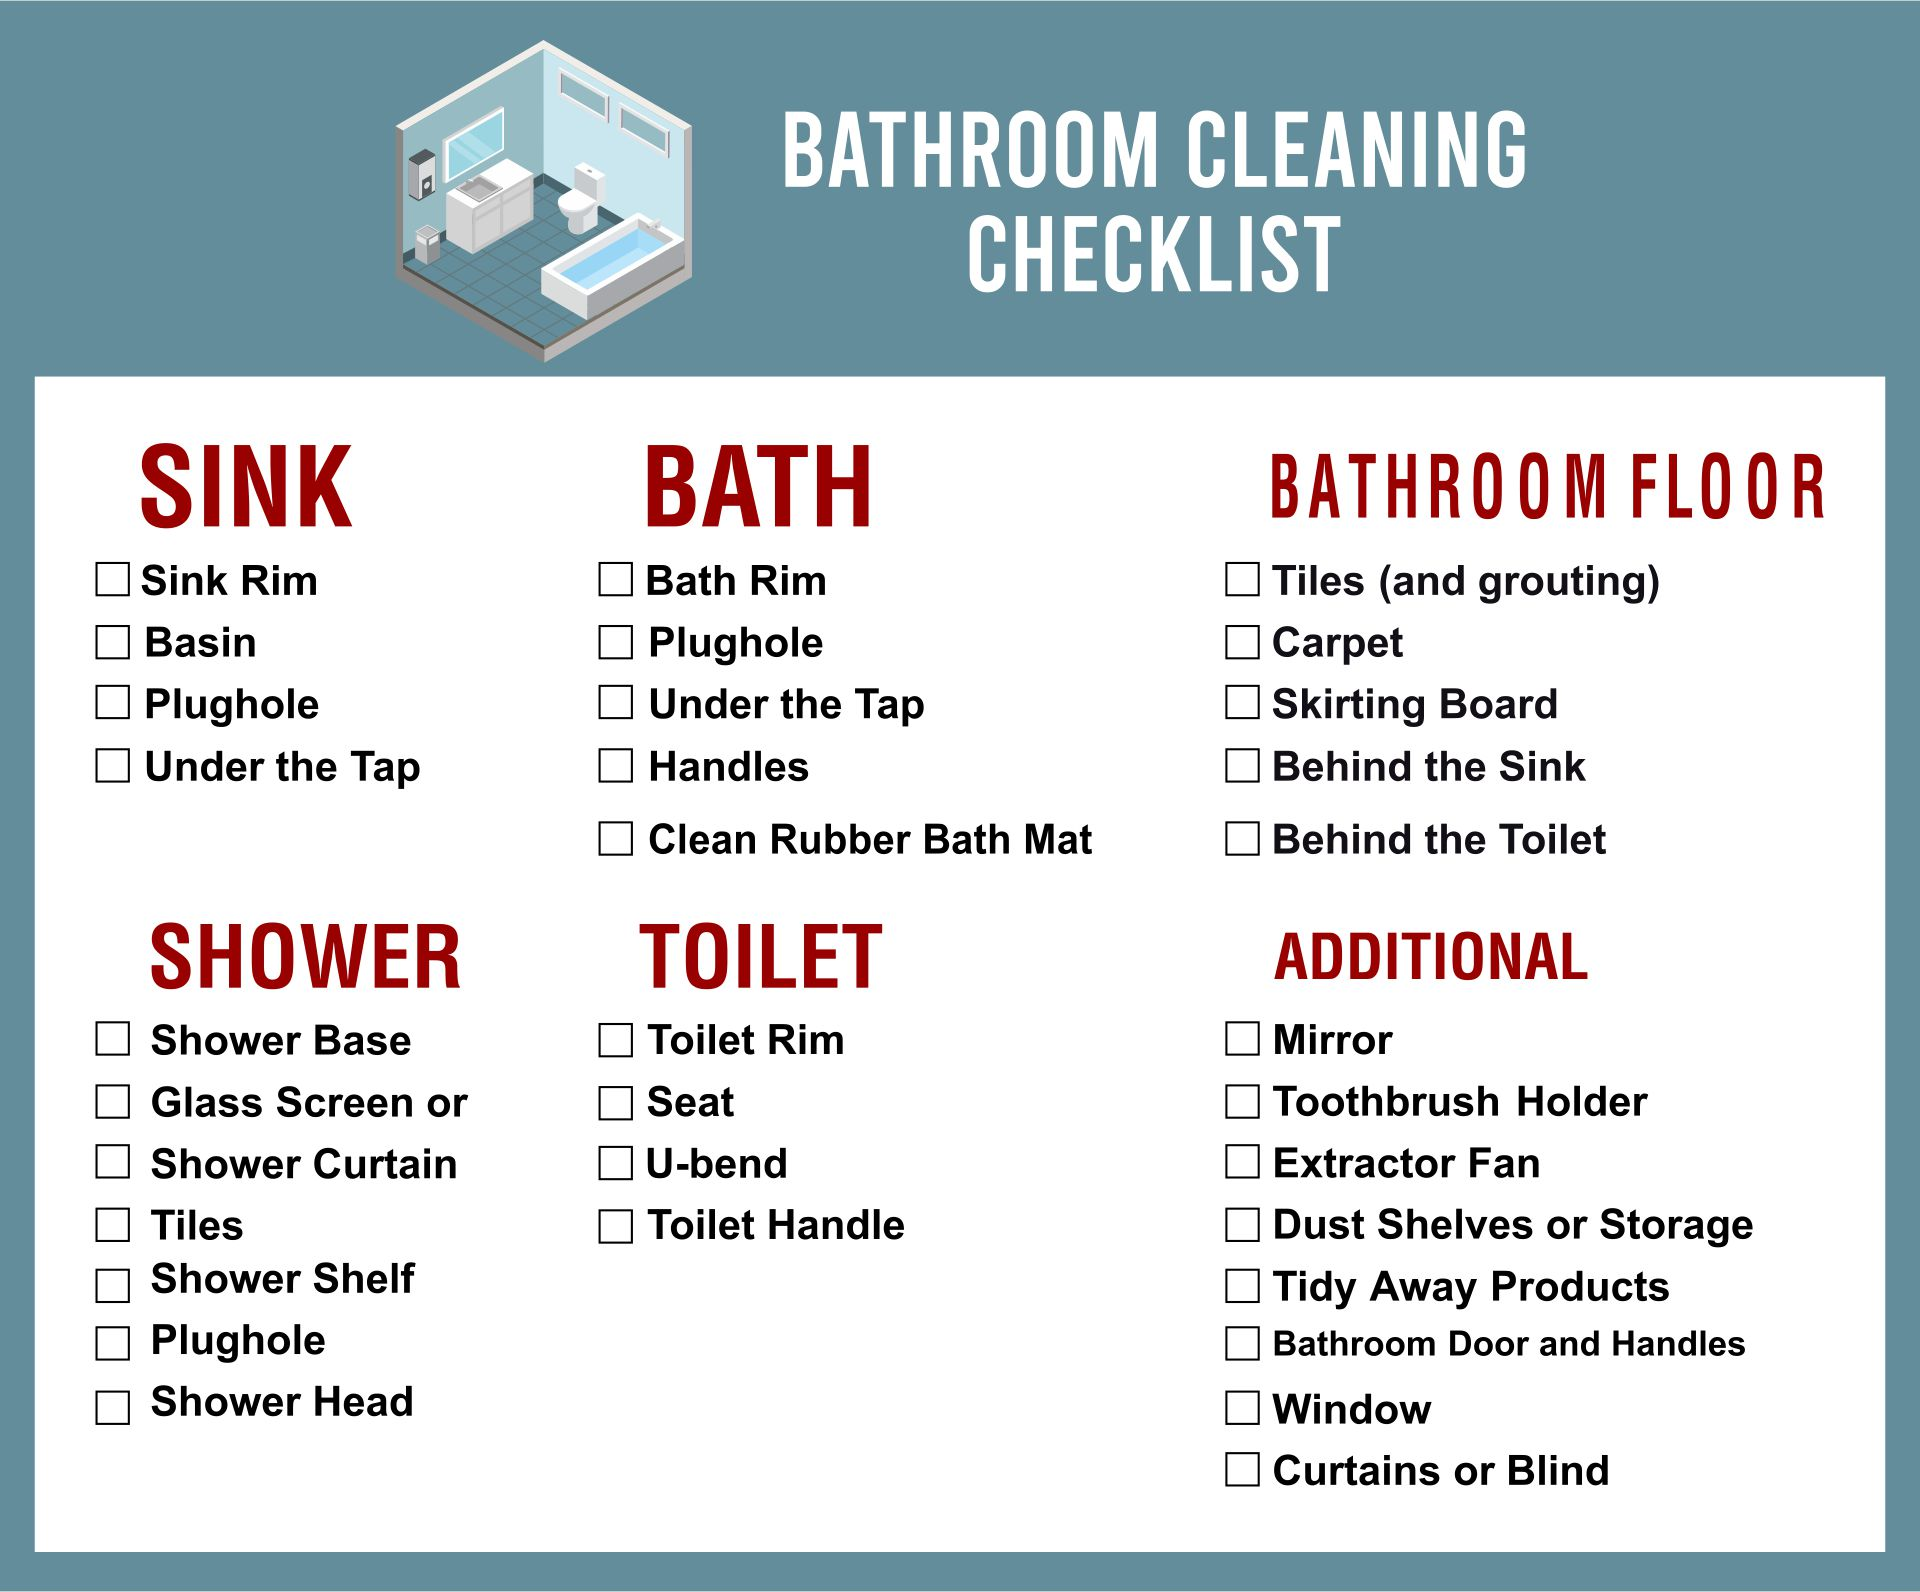 Bathroom Cleaning Checklist Print